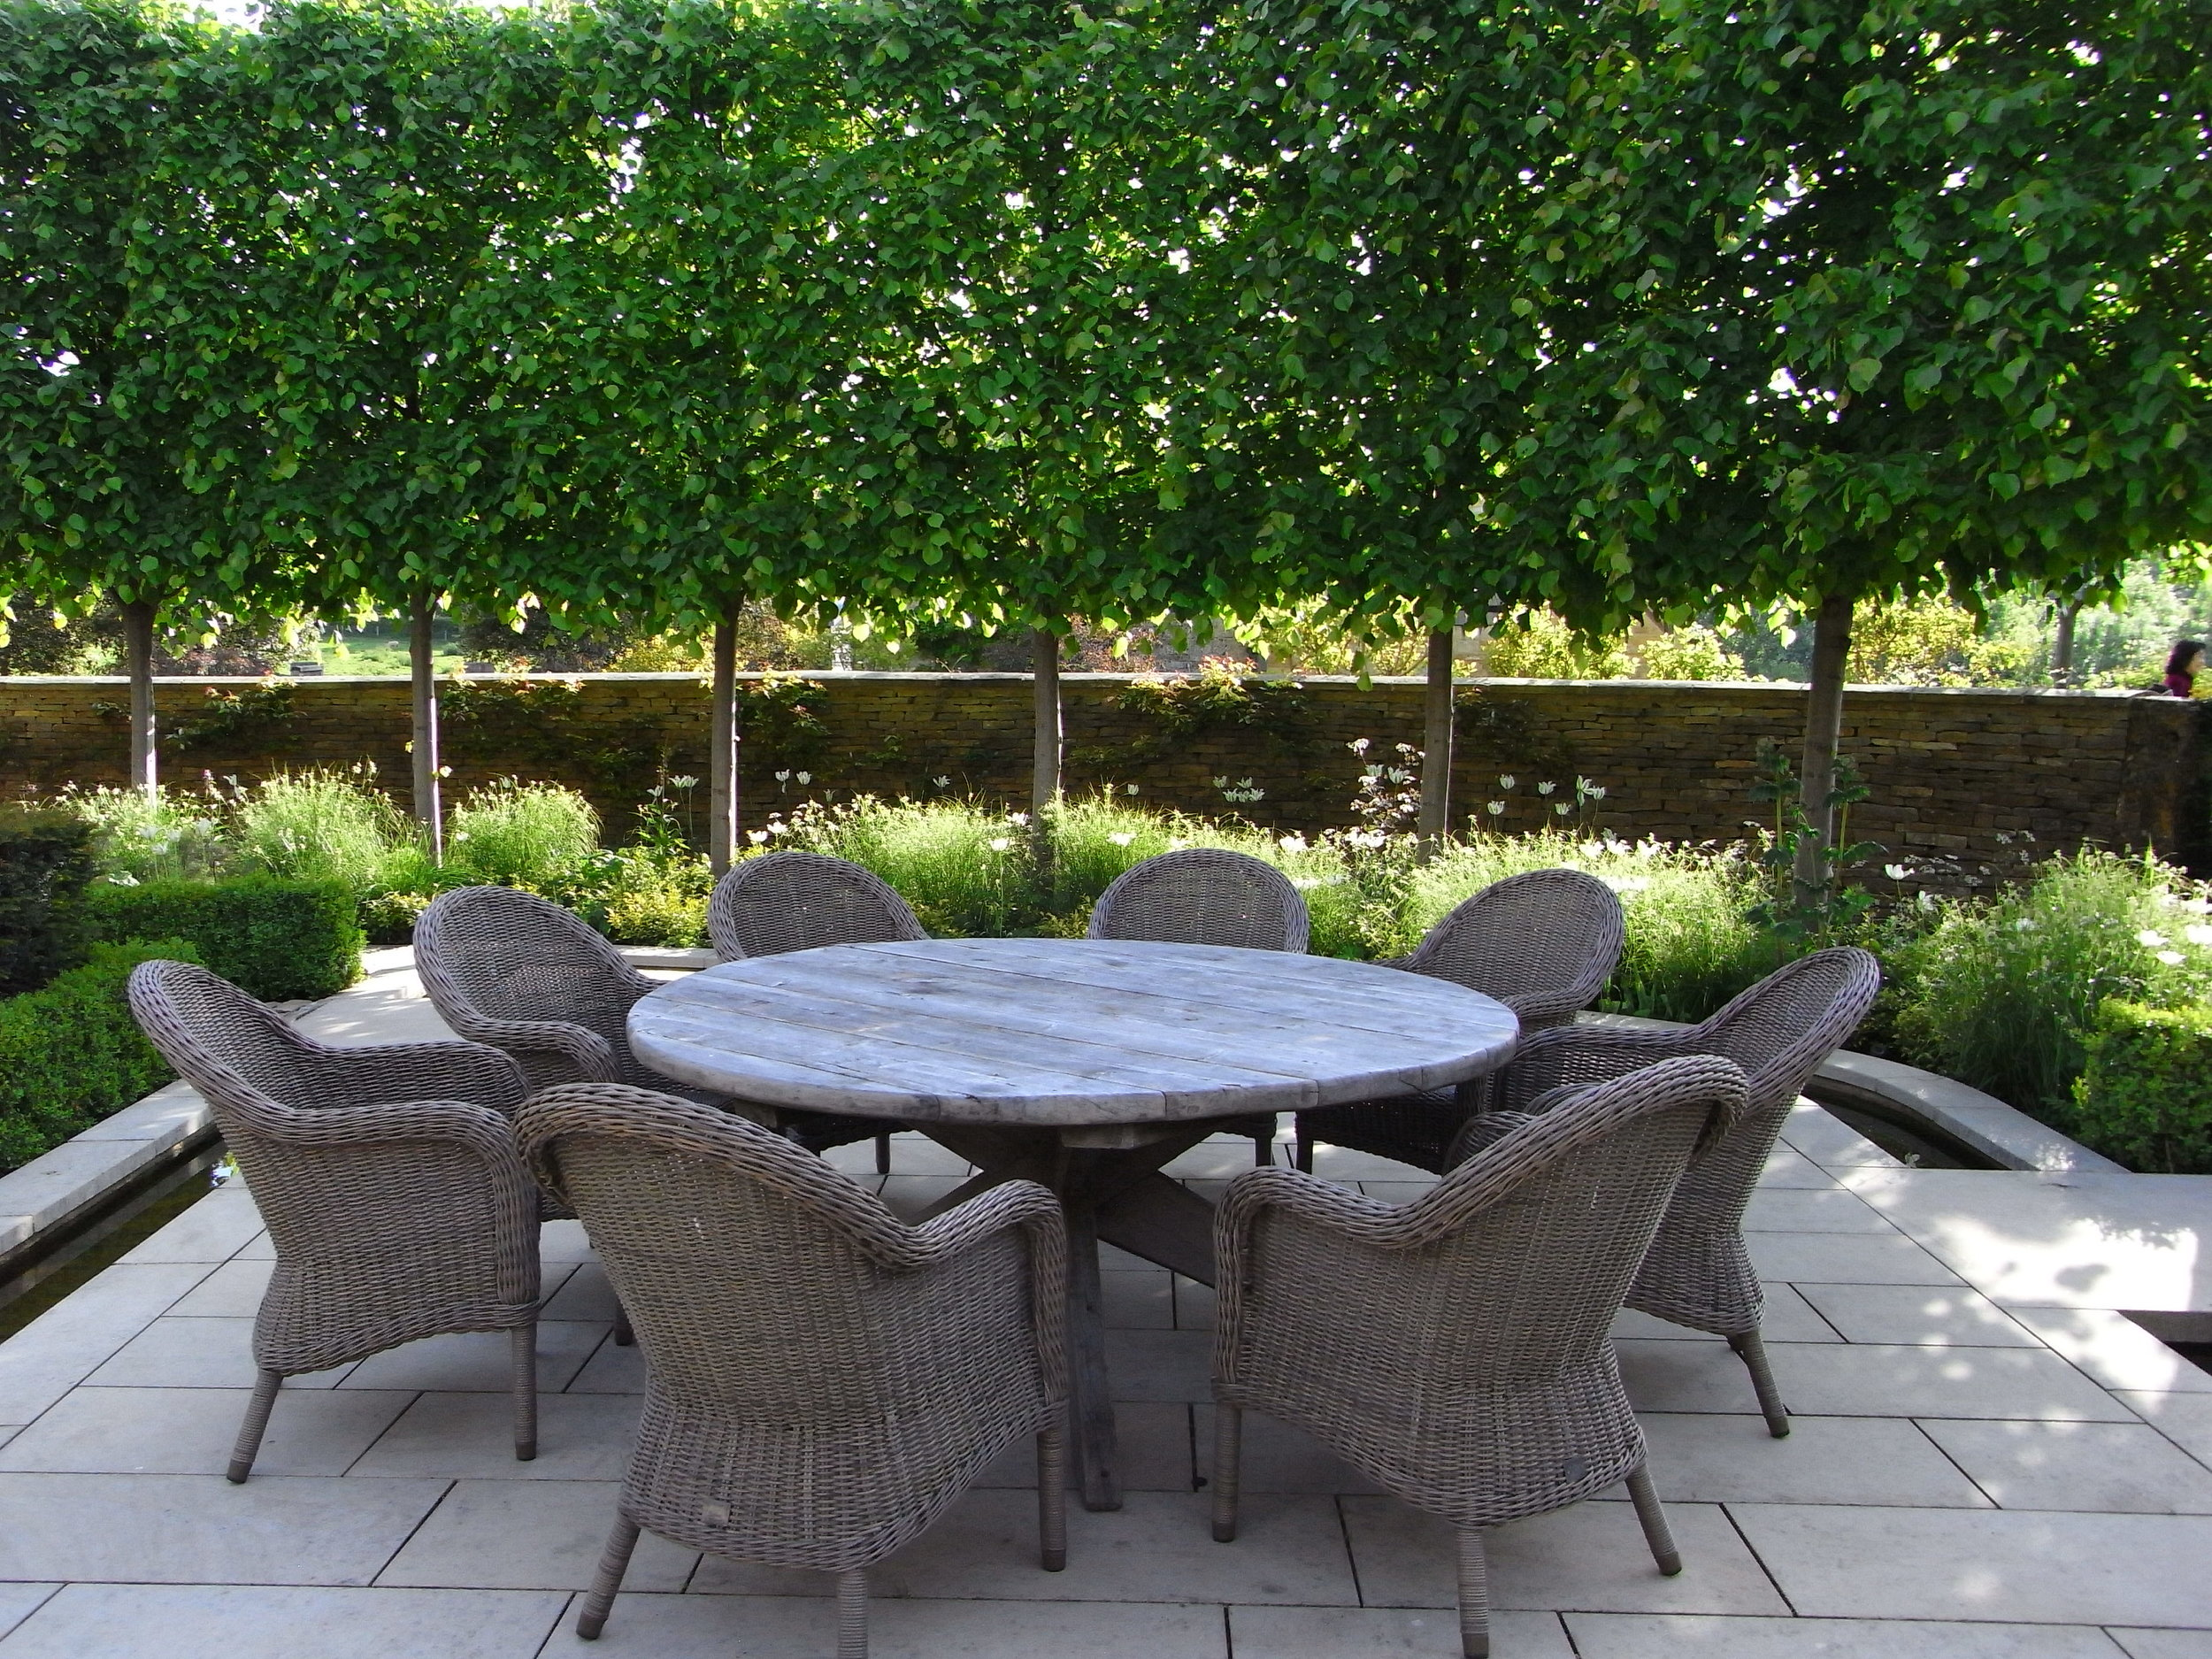 Hi From Lorraine! - I founded Verve Garden Design to help transform unloved garden spaces into valuable extensions of the home.